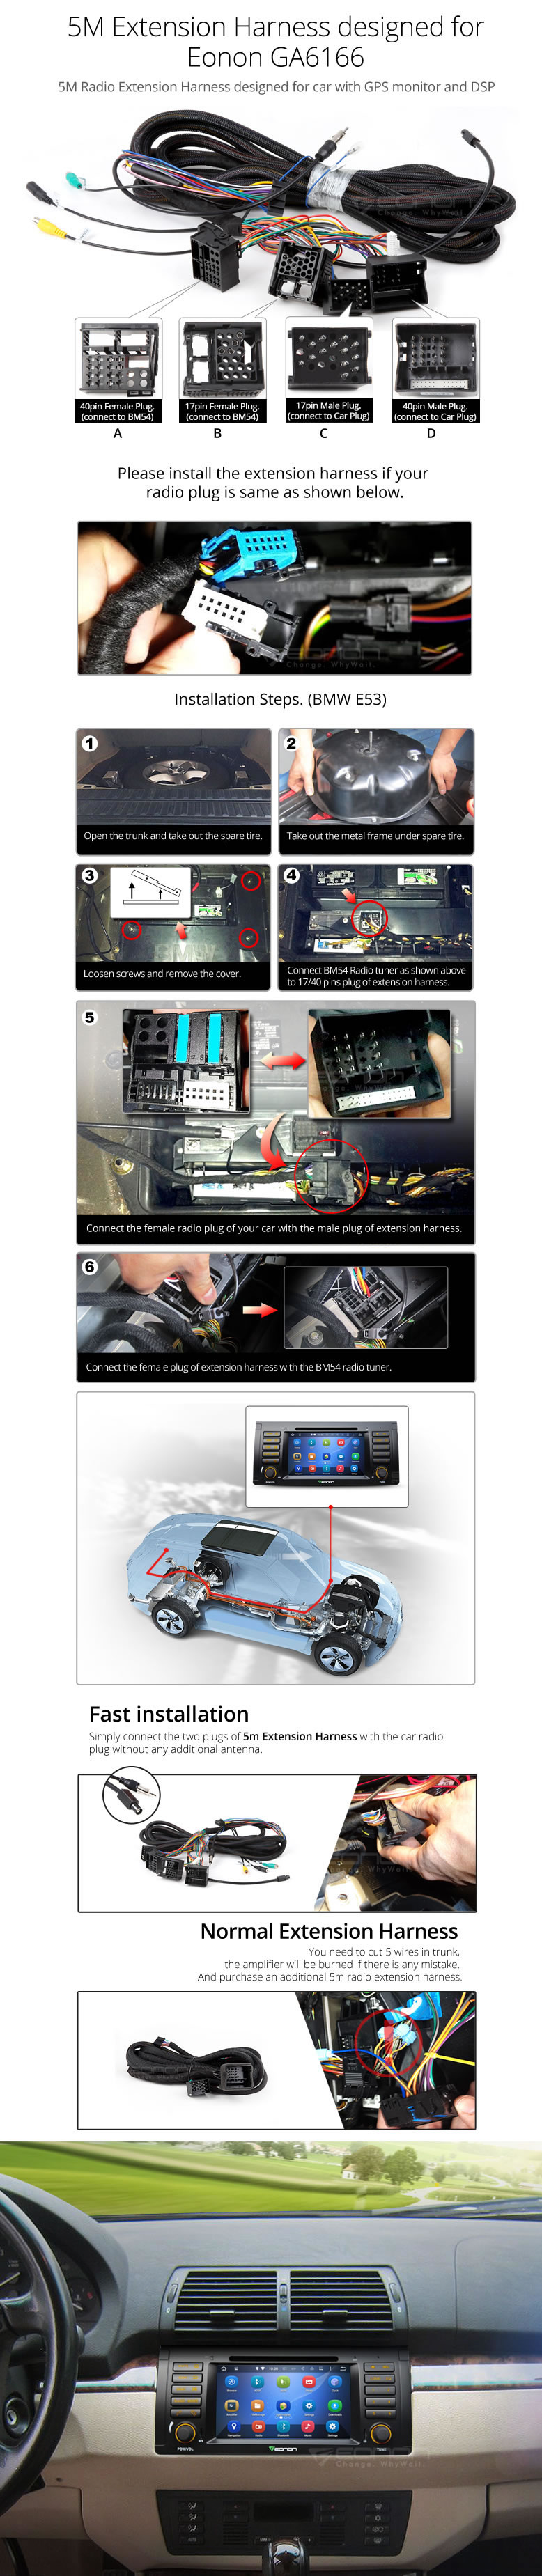 User Manuals For Eonon Car Dvd Android Stereo 7767514 Wiring Diagram Installations Manual